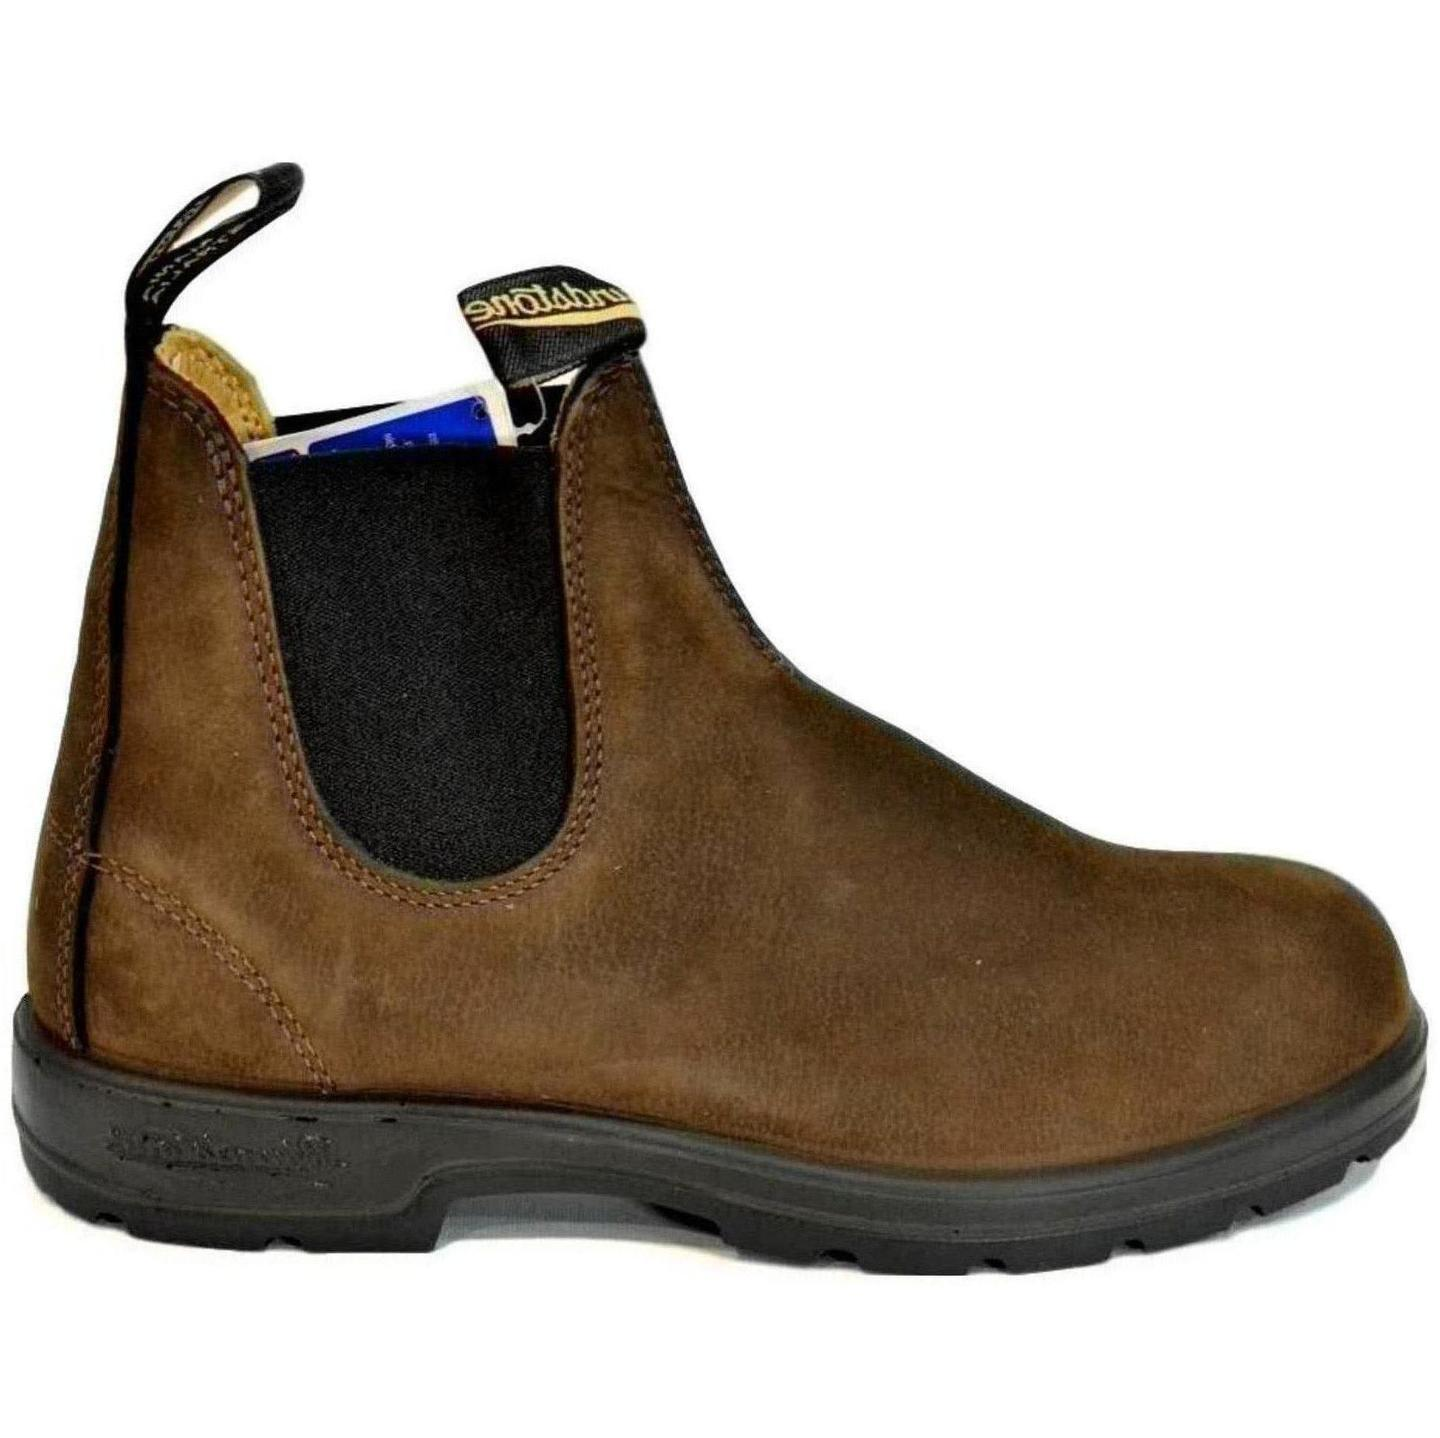 BLUNDSTONE 1606  STIVALETTI AUSTRALIANI BROWN NUBUCK PEBBLE